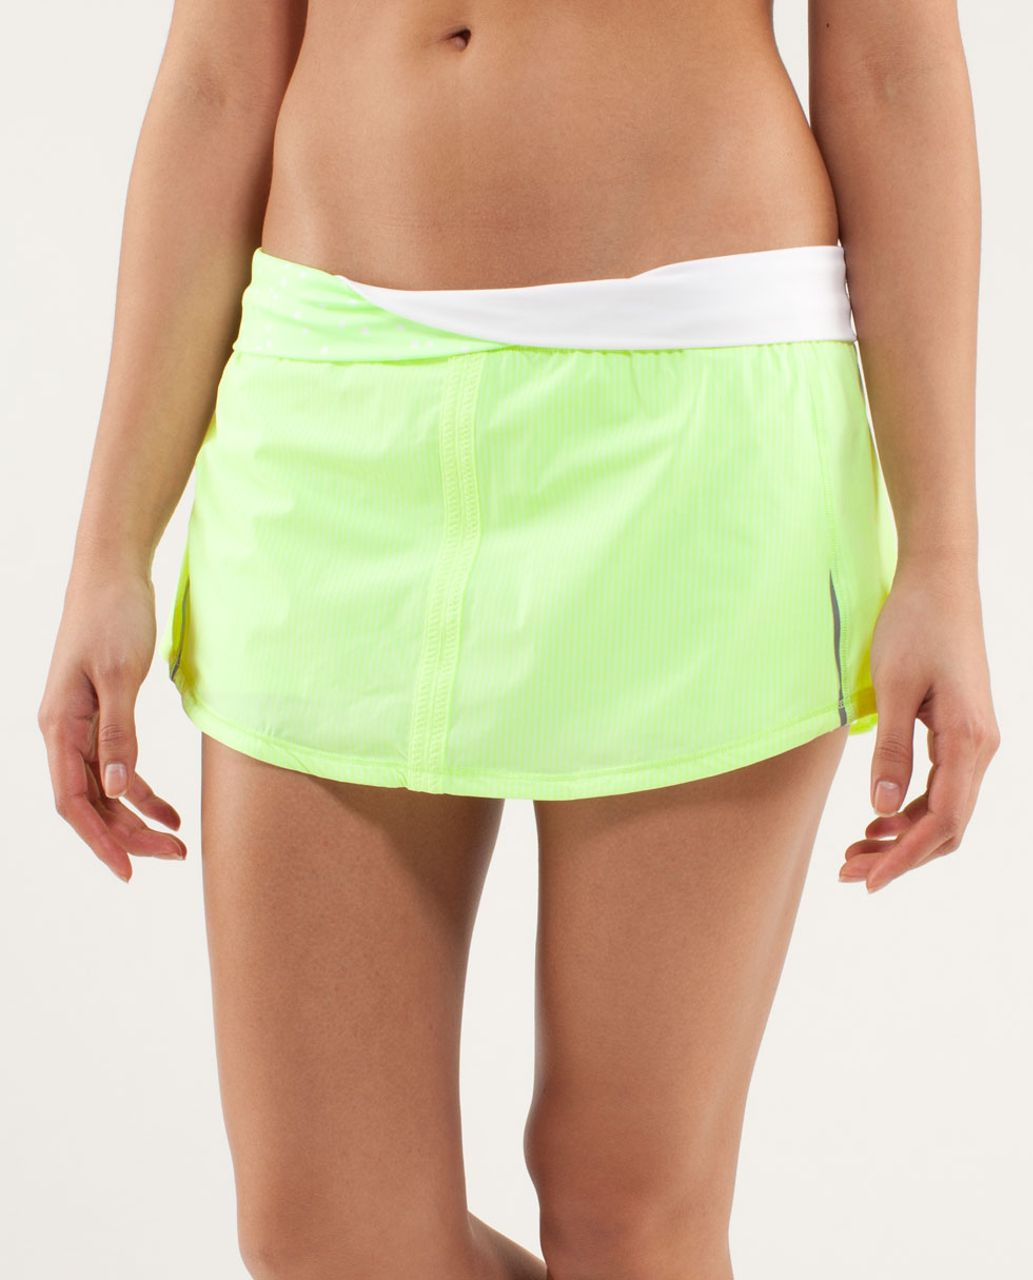 Lululemon Run:  Pace Skirt - Wagon Stripe Faded Zap / Petit Dot Faded Zap / White